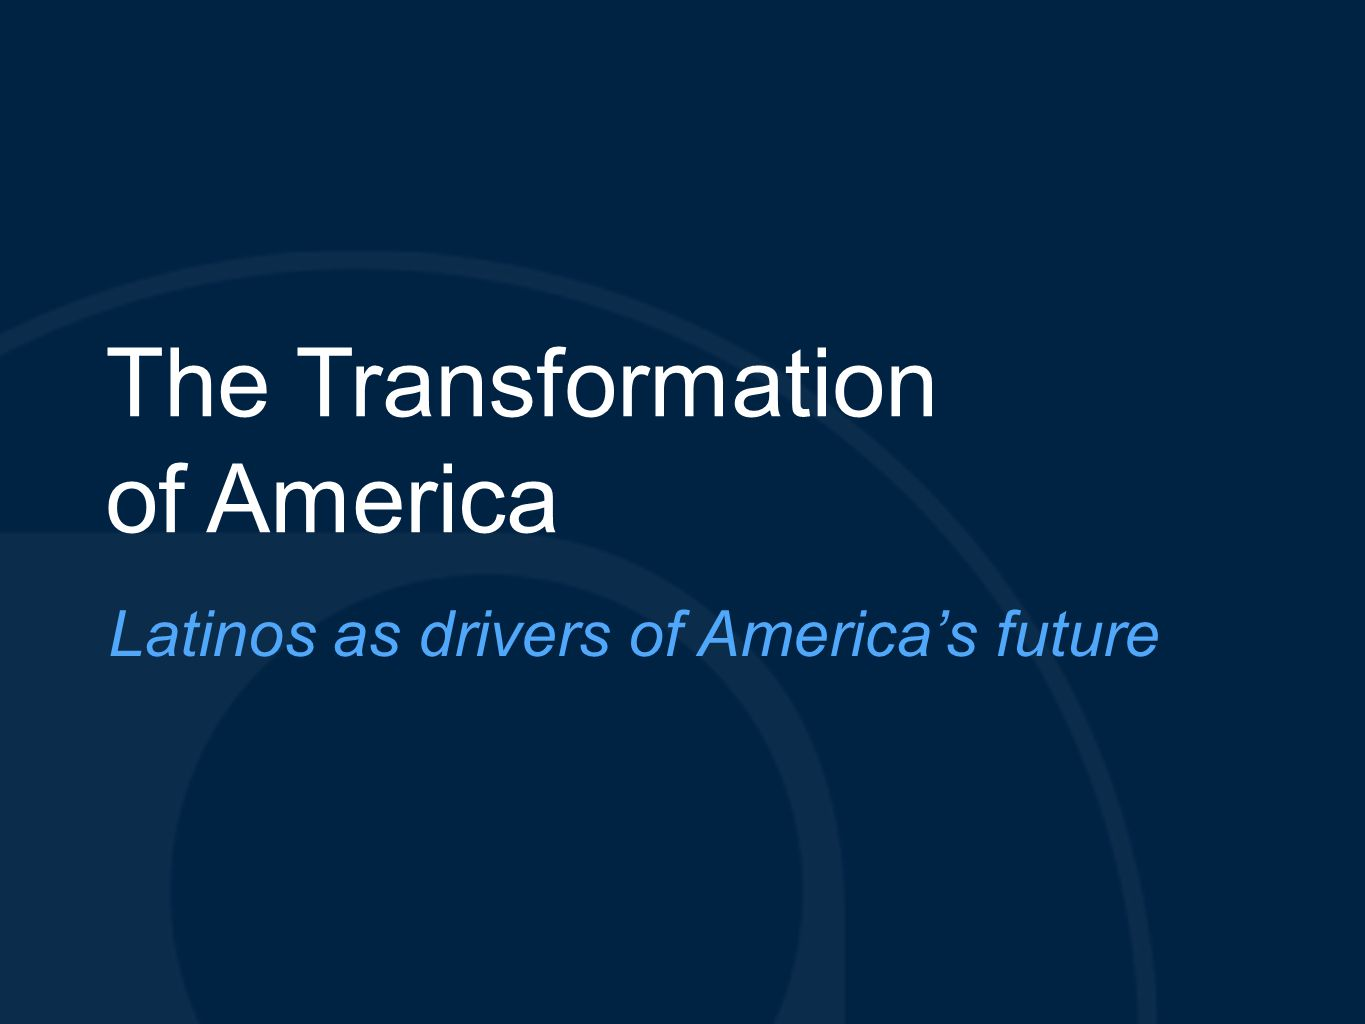 Continued growth of Latino electoral power brings national attention to Latino engagement.